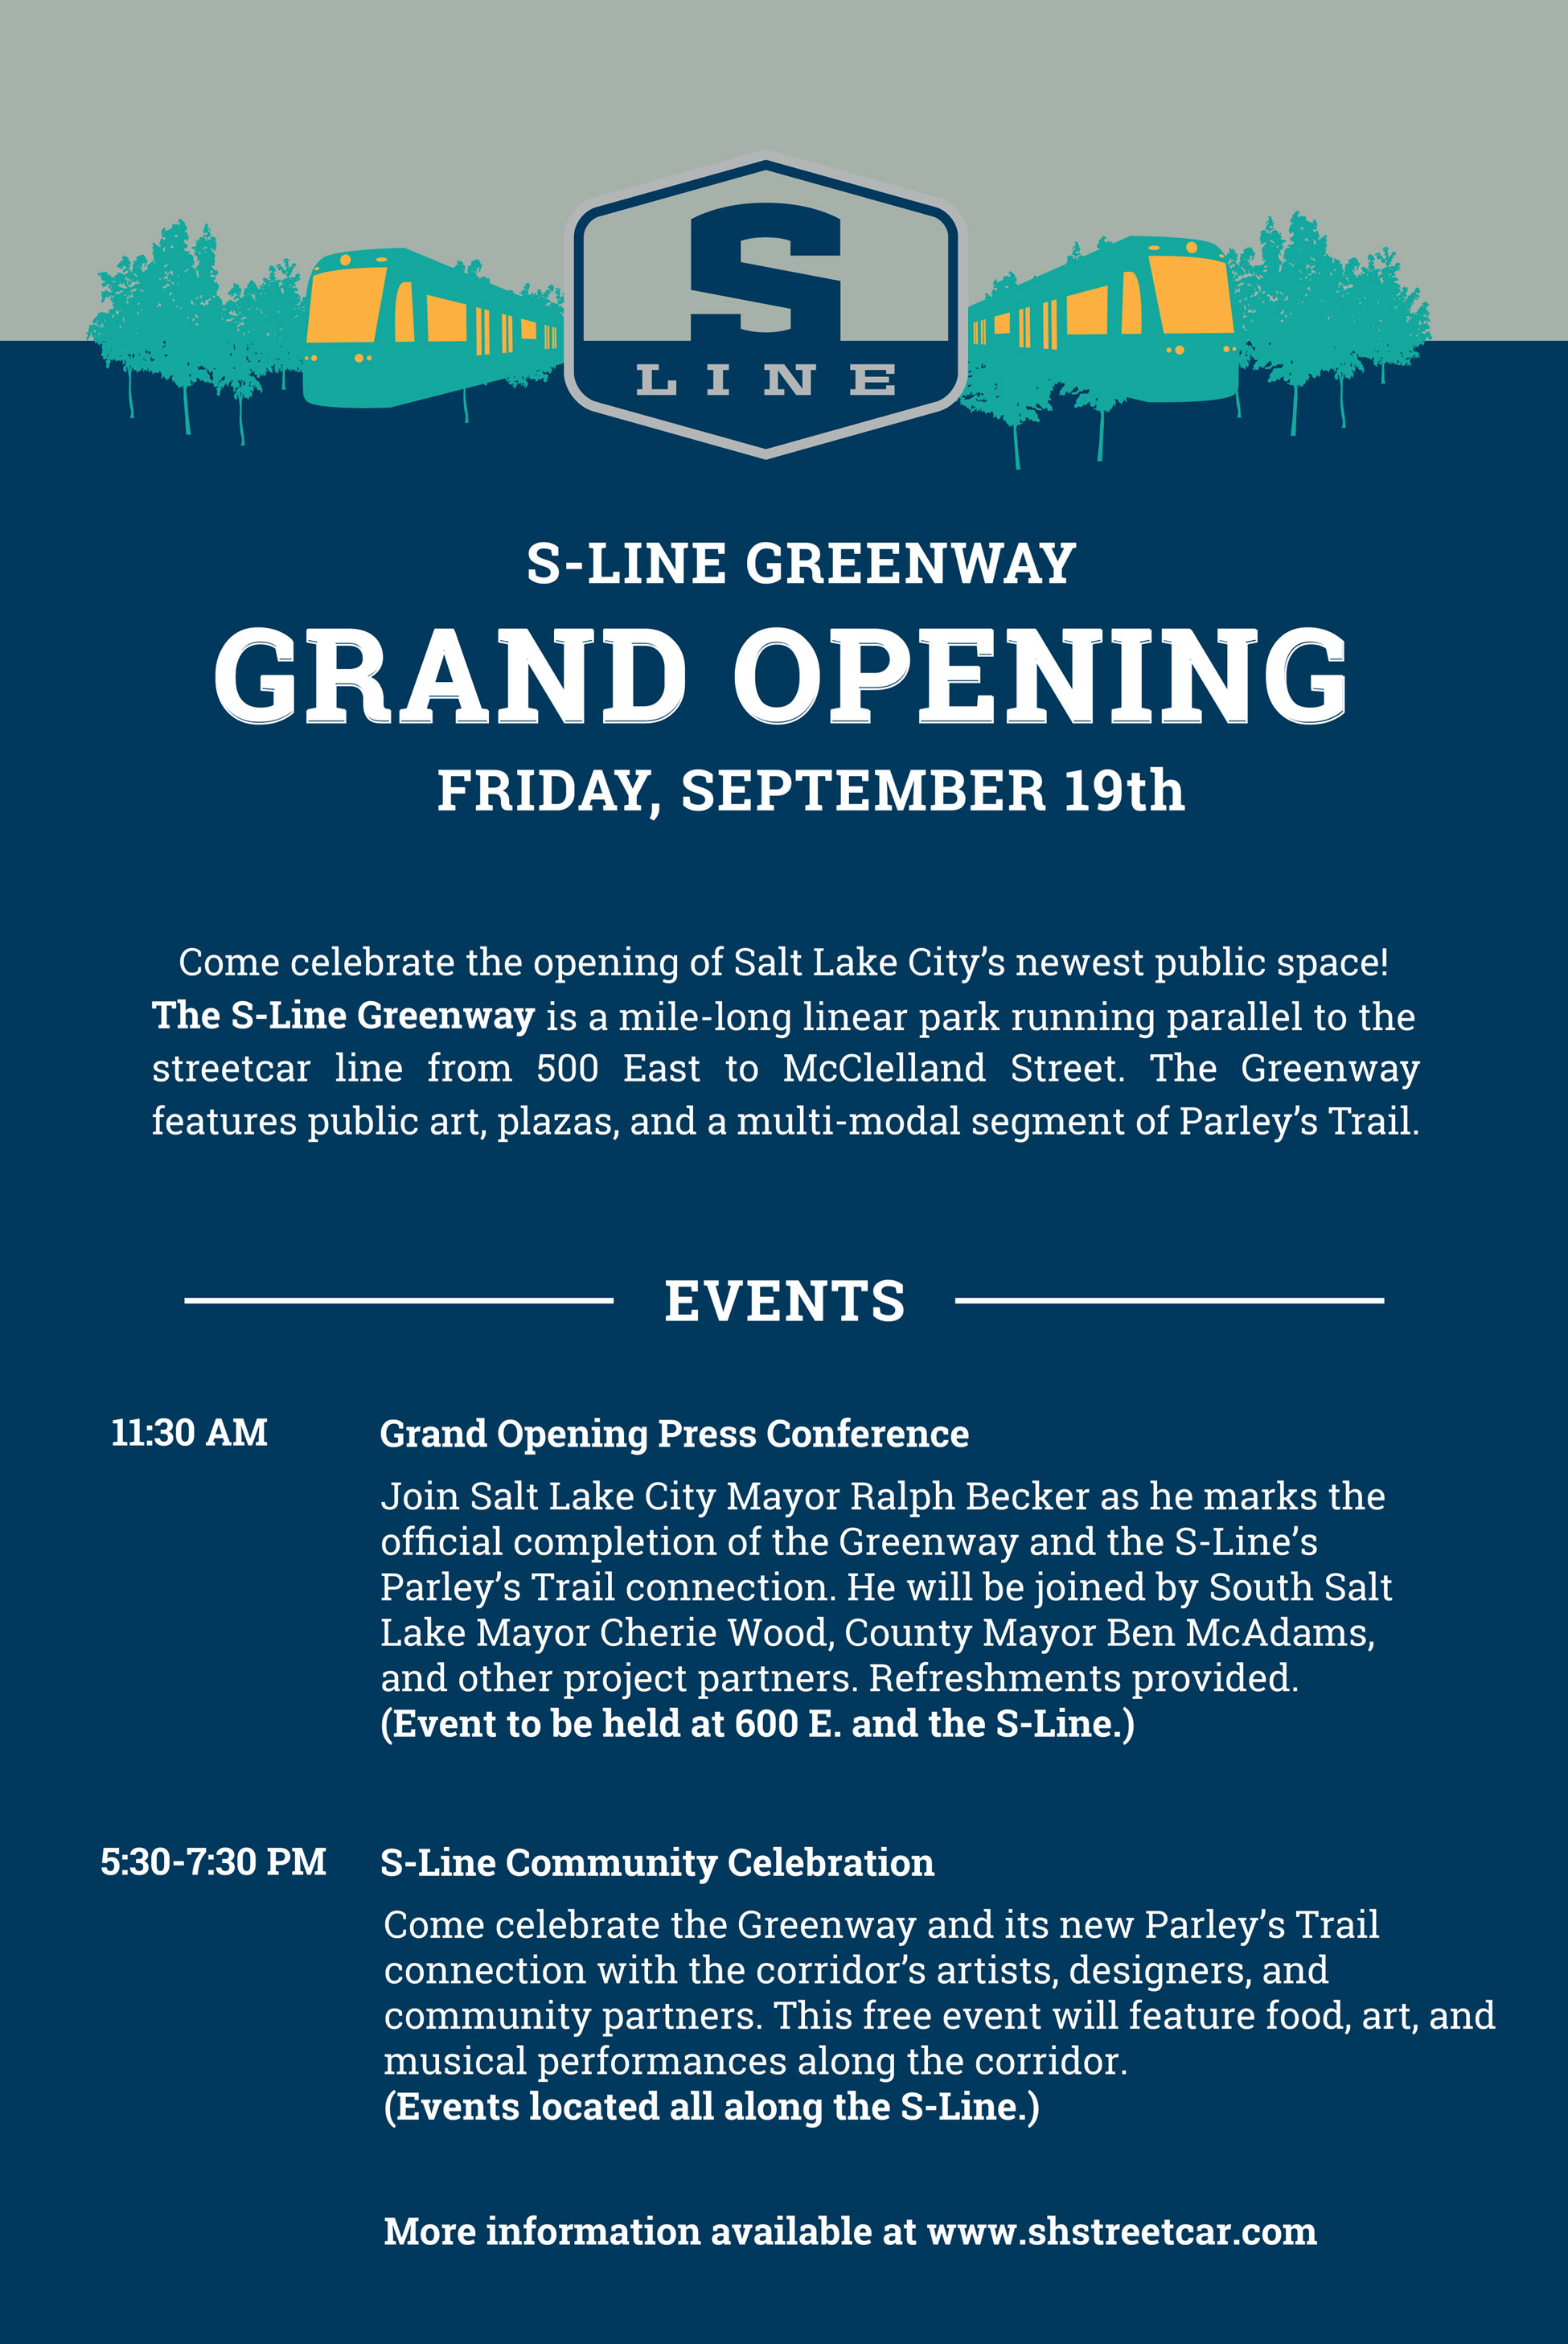 Celebrate The S Line Greenway Grand Opening On Sept 19